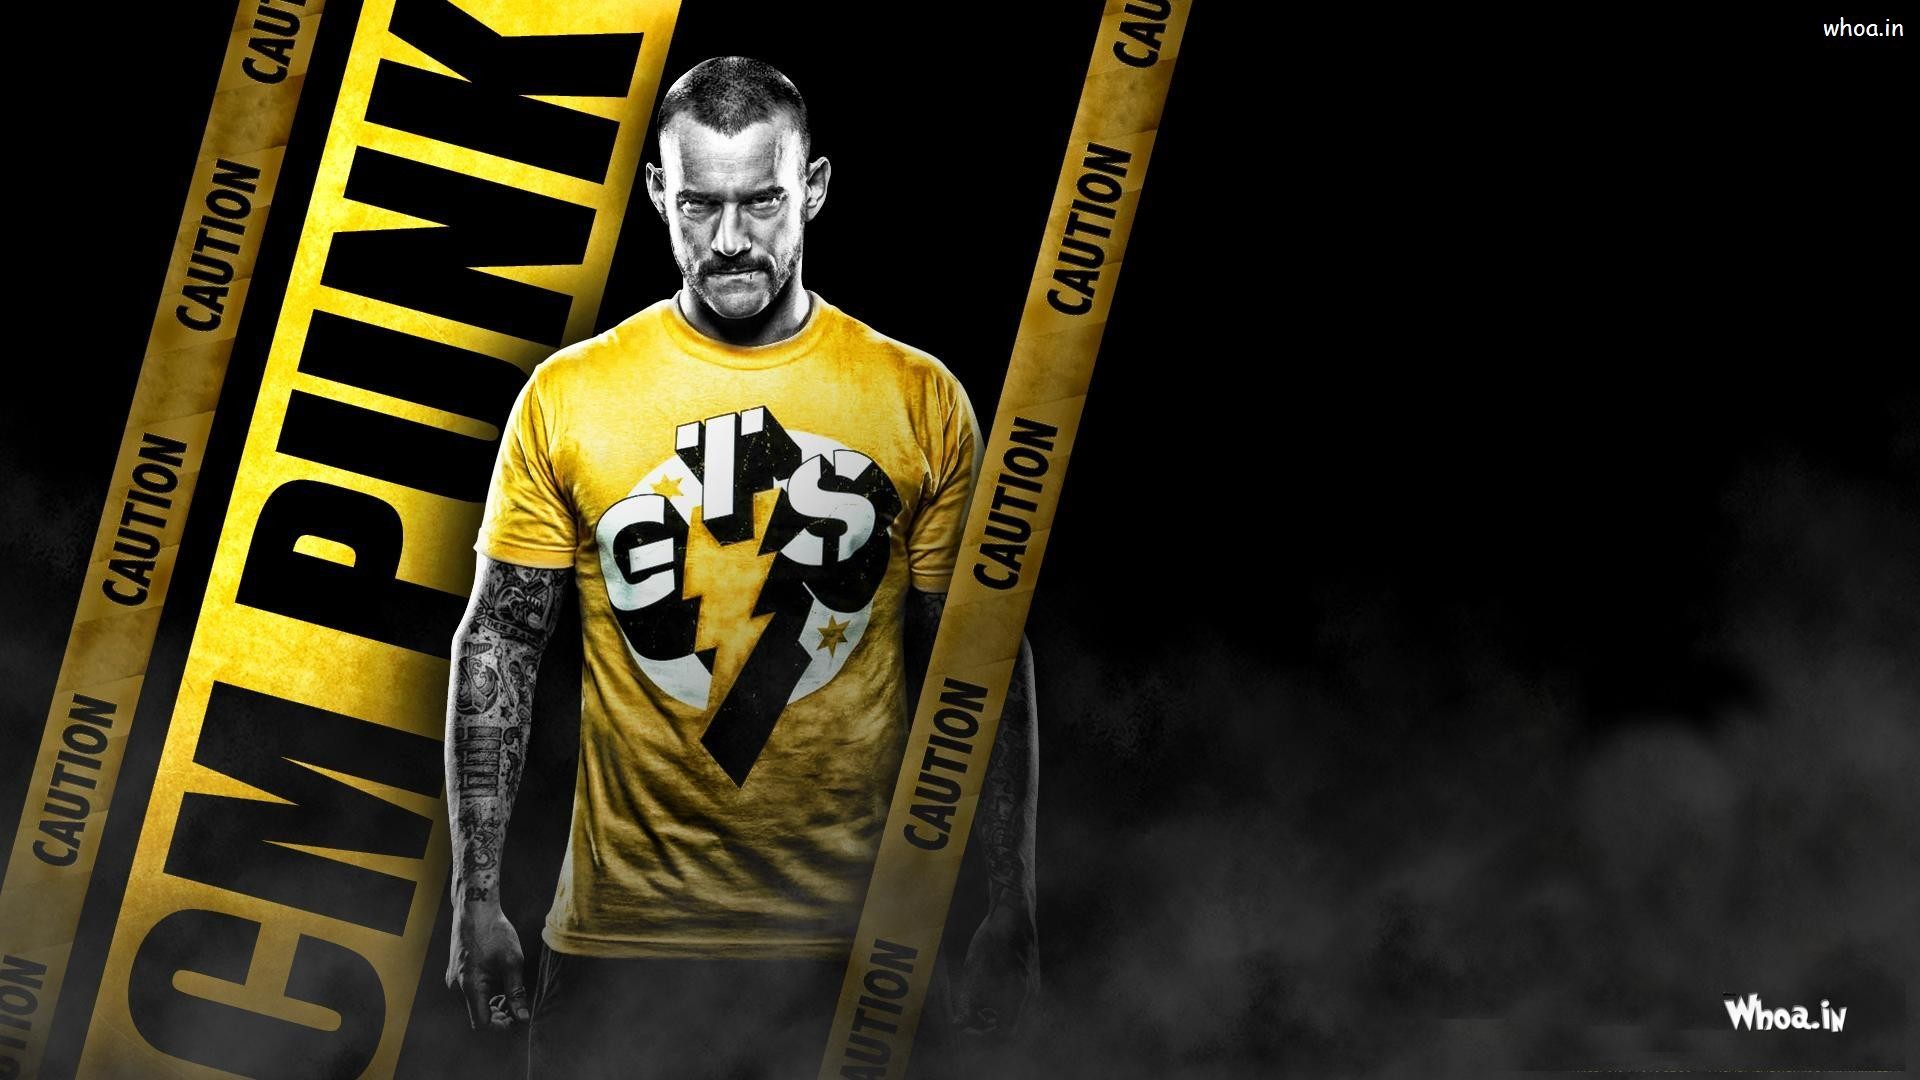 … CM Punk Caution With Yellow T-Shirt HD WWE Wallpaper …